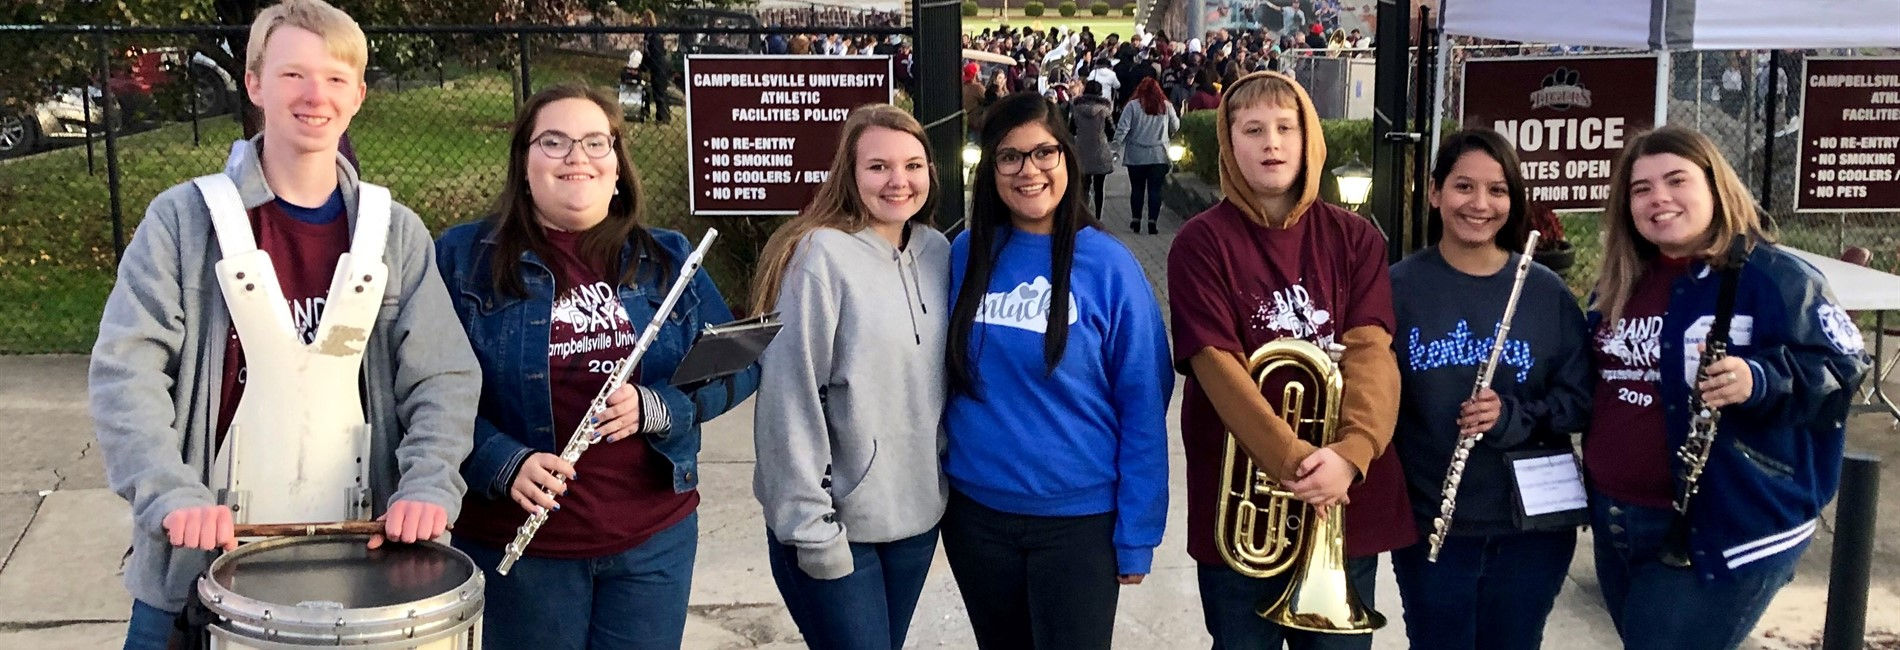 CCHS band members had a great time at Campbellsville University's Band Day!